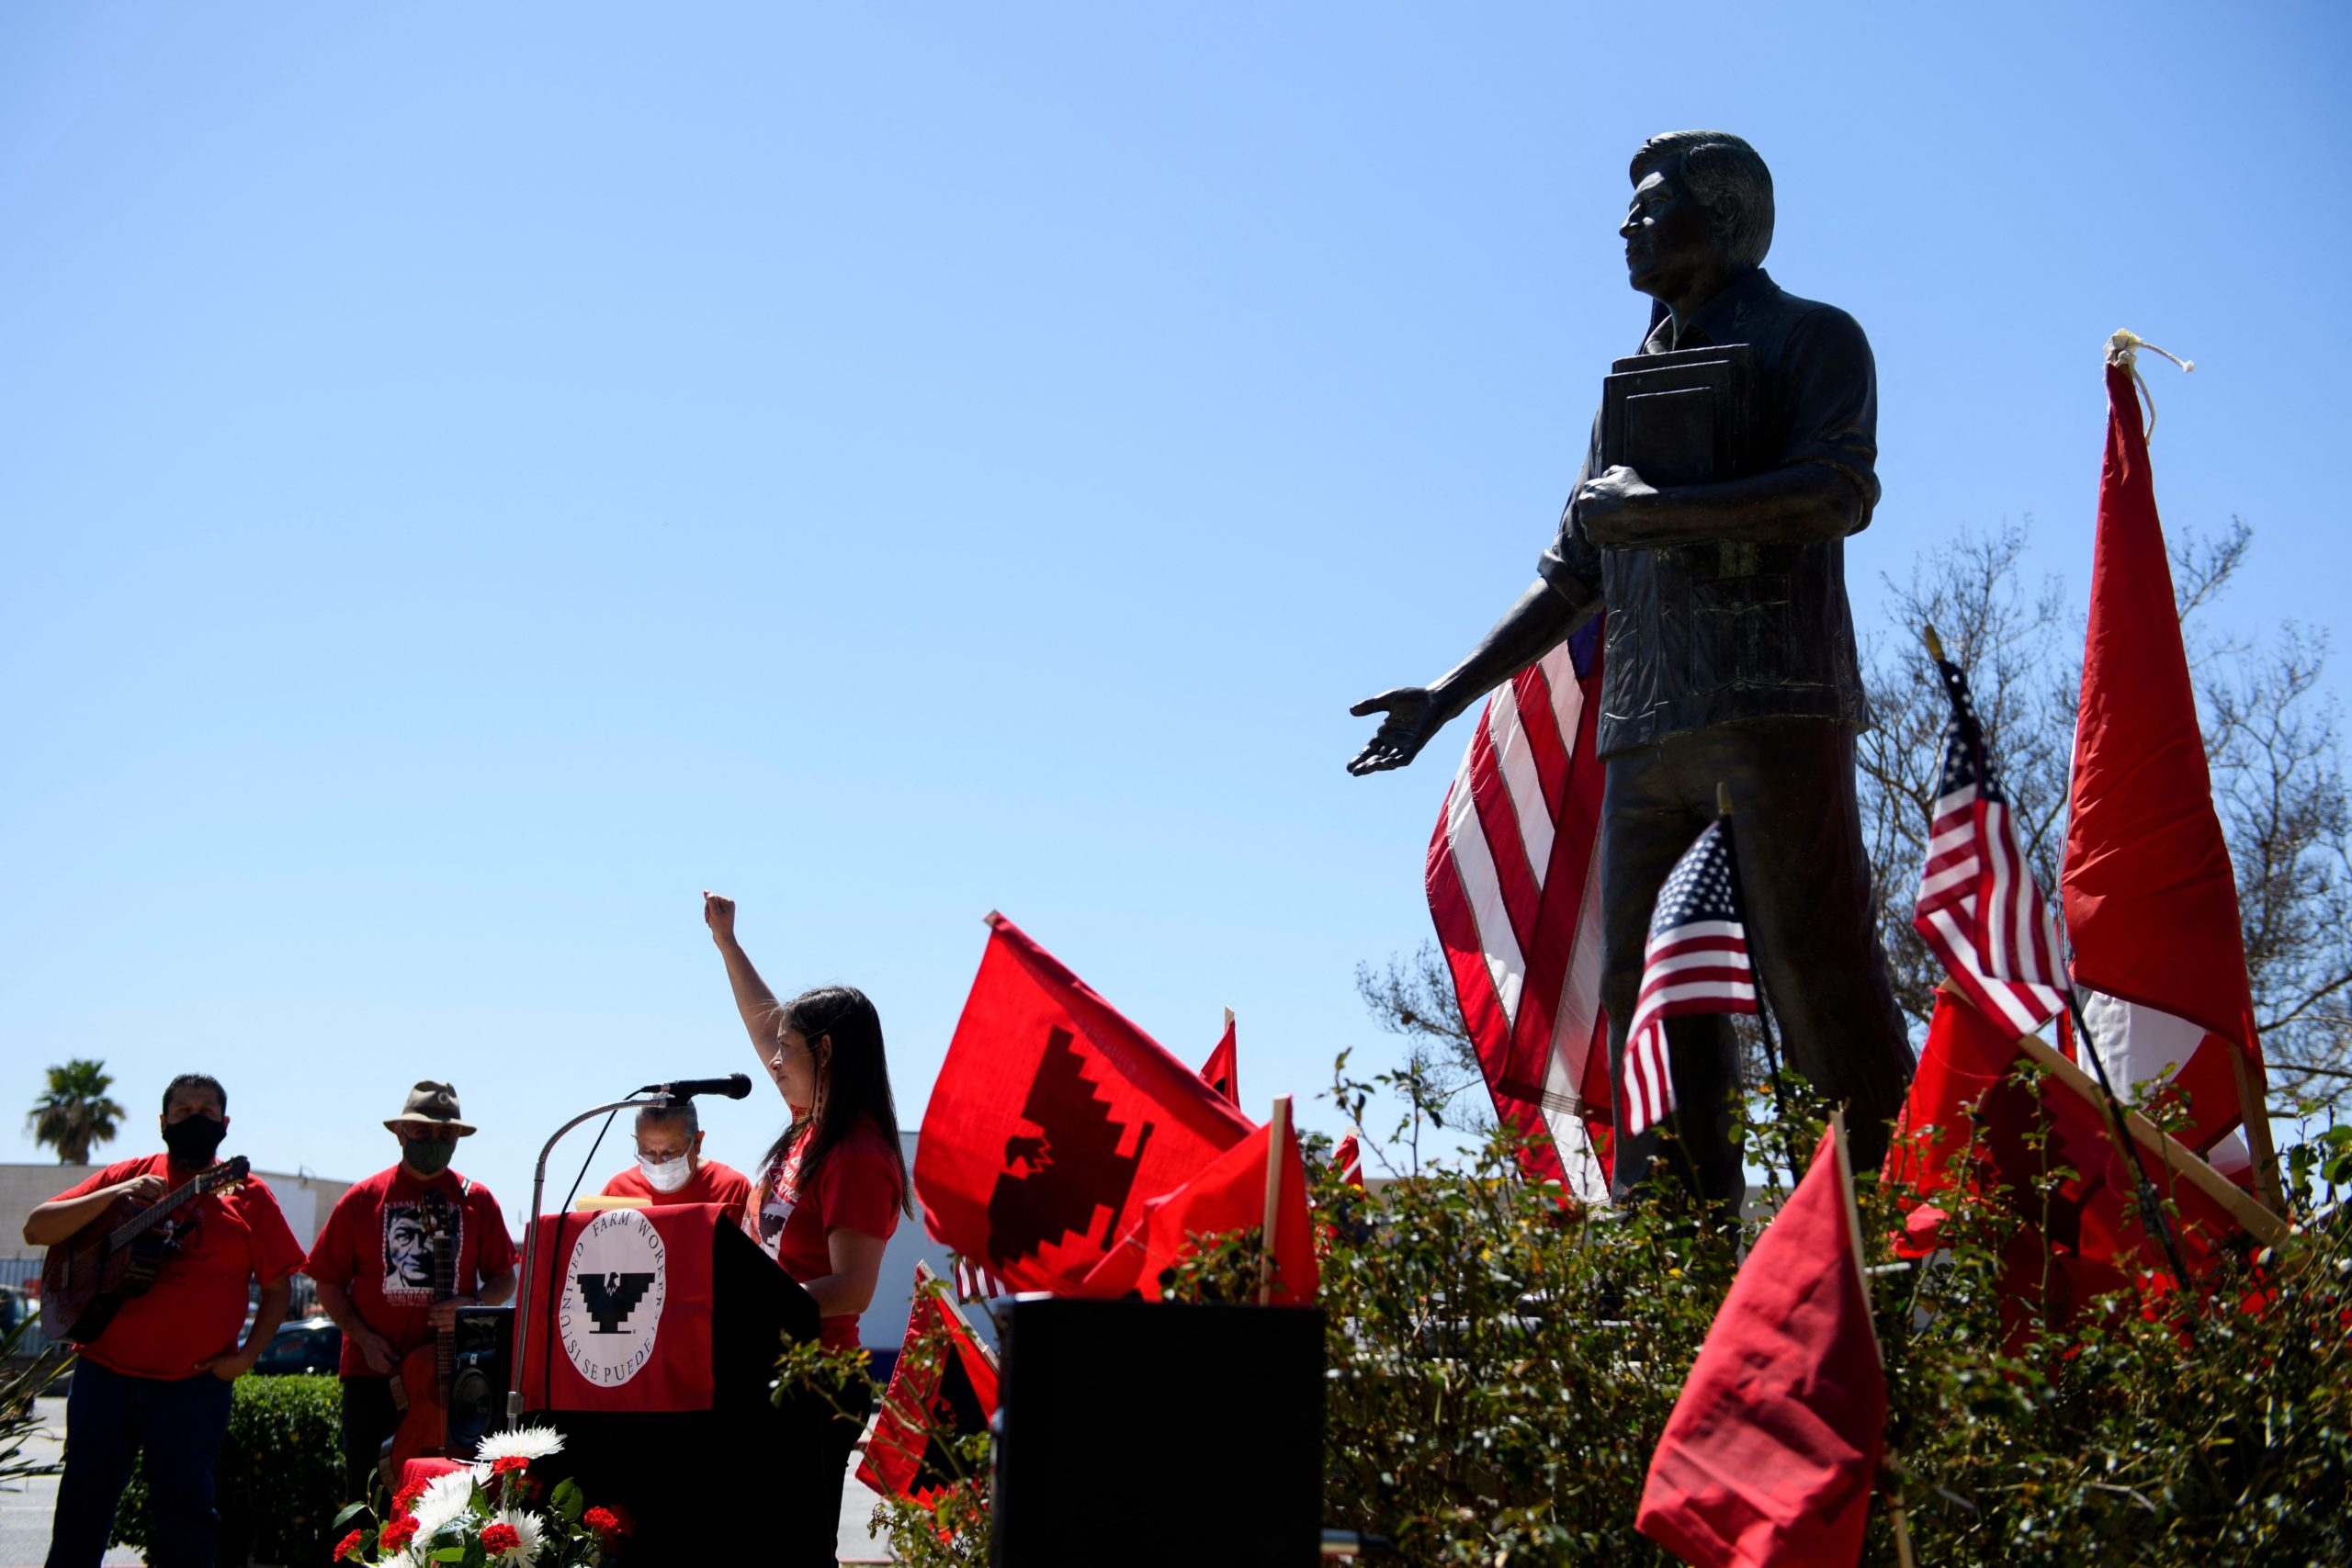 Members of the San Fernando Valley commemorative committee celebrate Cesar Chavez Day on March 31 in San Fernando, California. (Patrick T. Fallon/AFP via Getty Images)